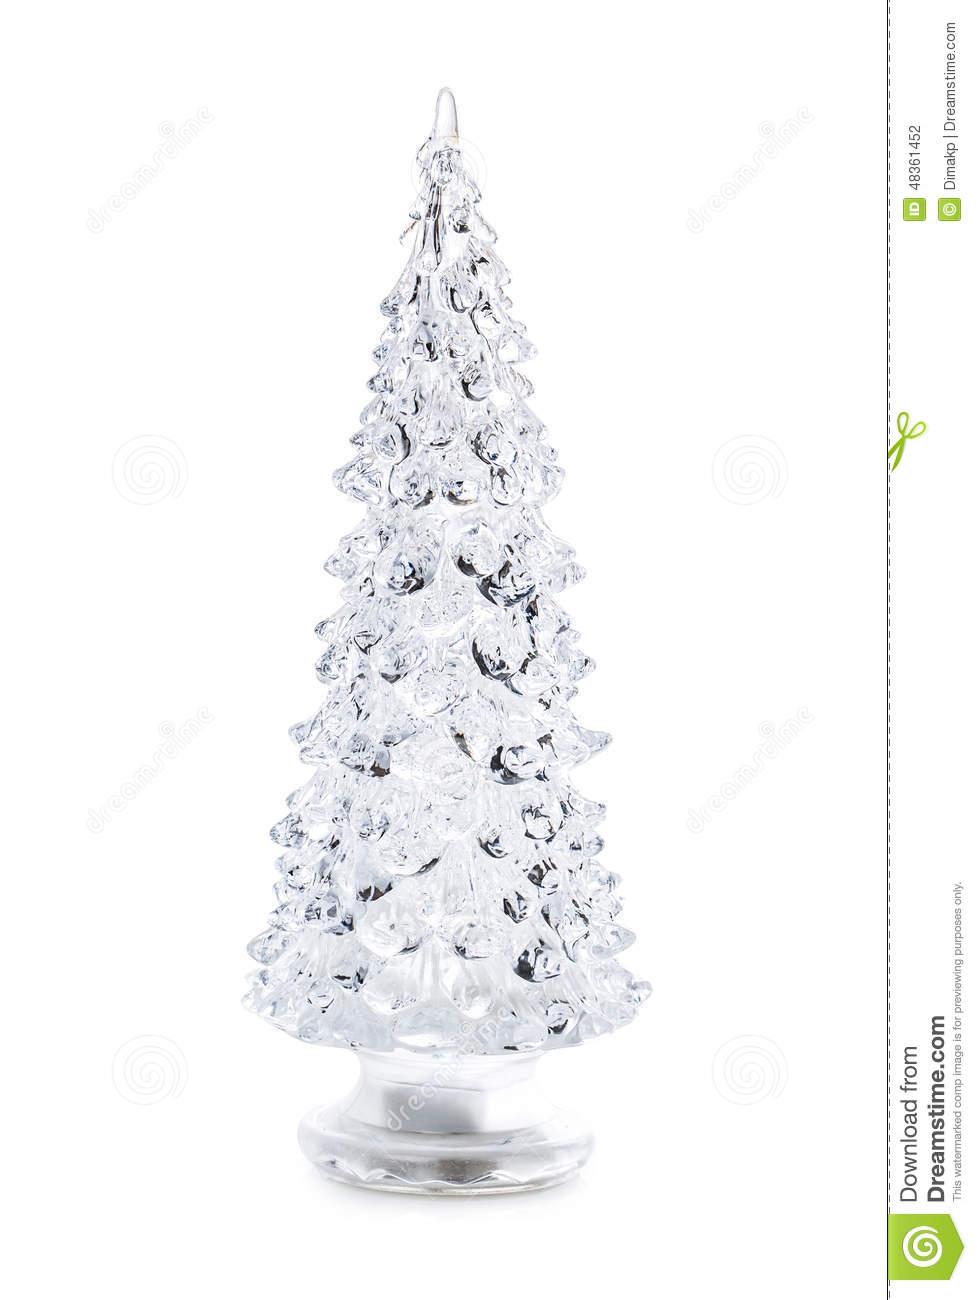 royalty free stock photo download glass christmas tree - Glass Christmas Trees